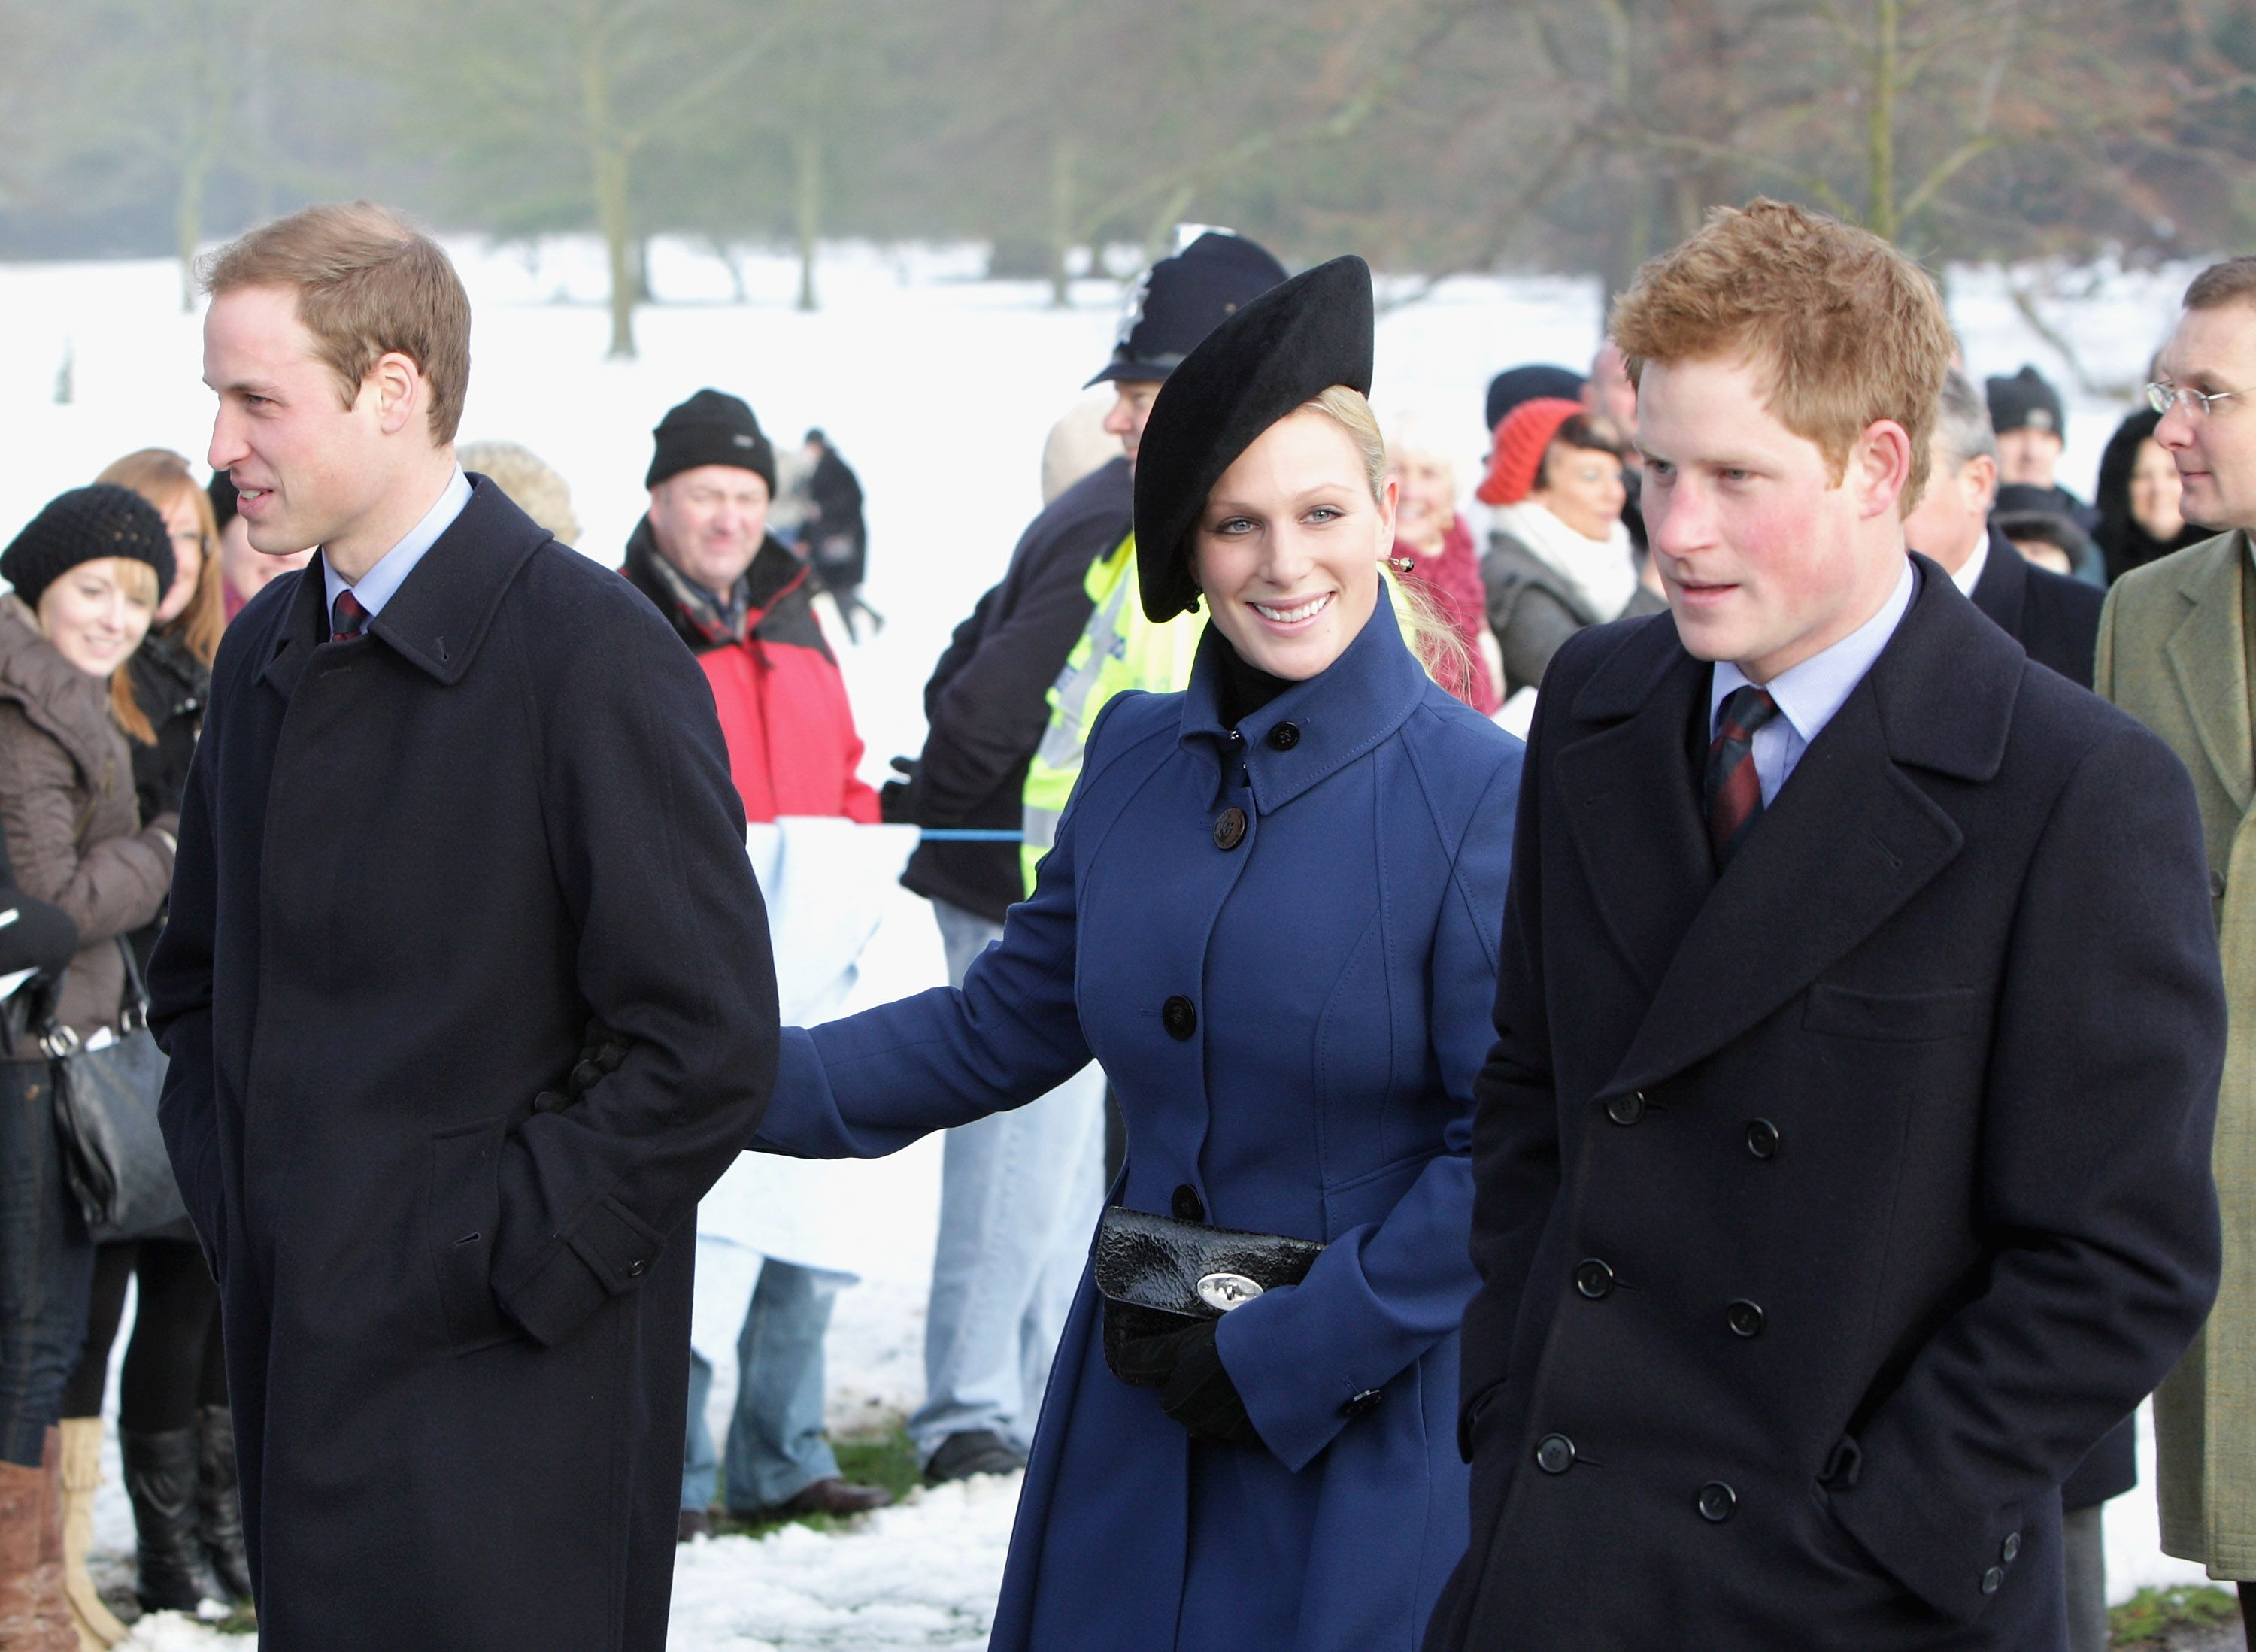 Prince William and Prince Harry with their cousin Zara Phillips (now Zara Tindall) on Christmas Day in 2009.